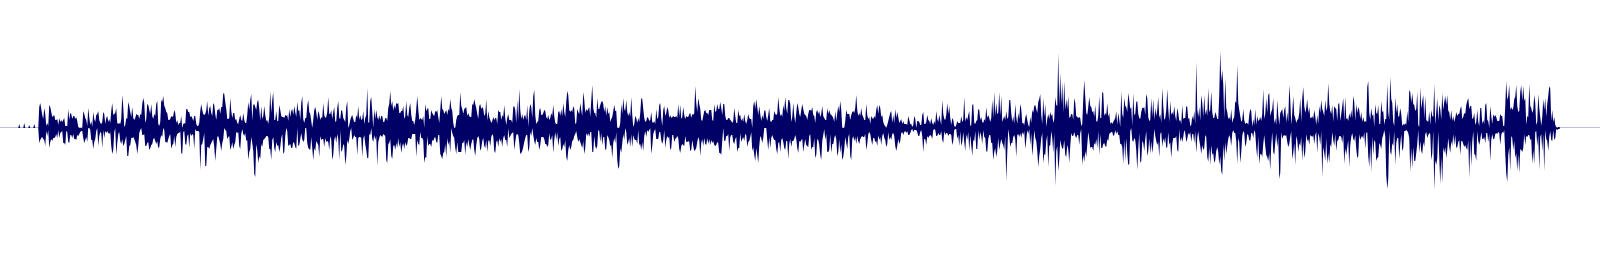 waveform of track #141685